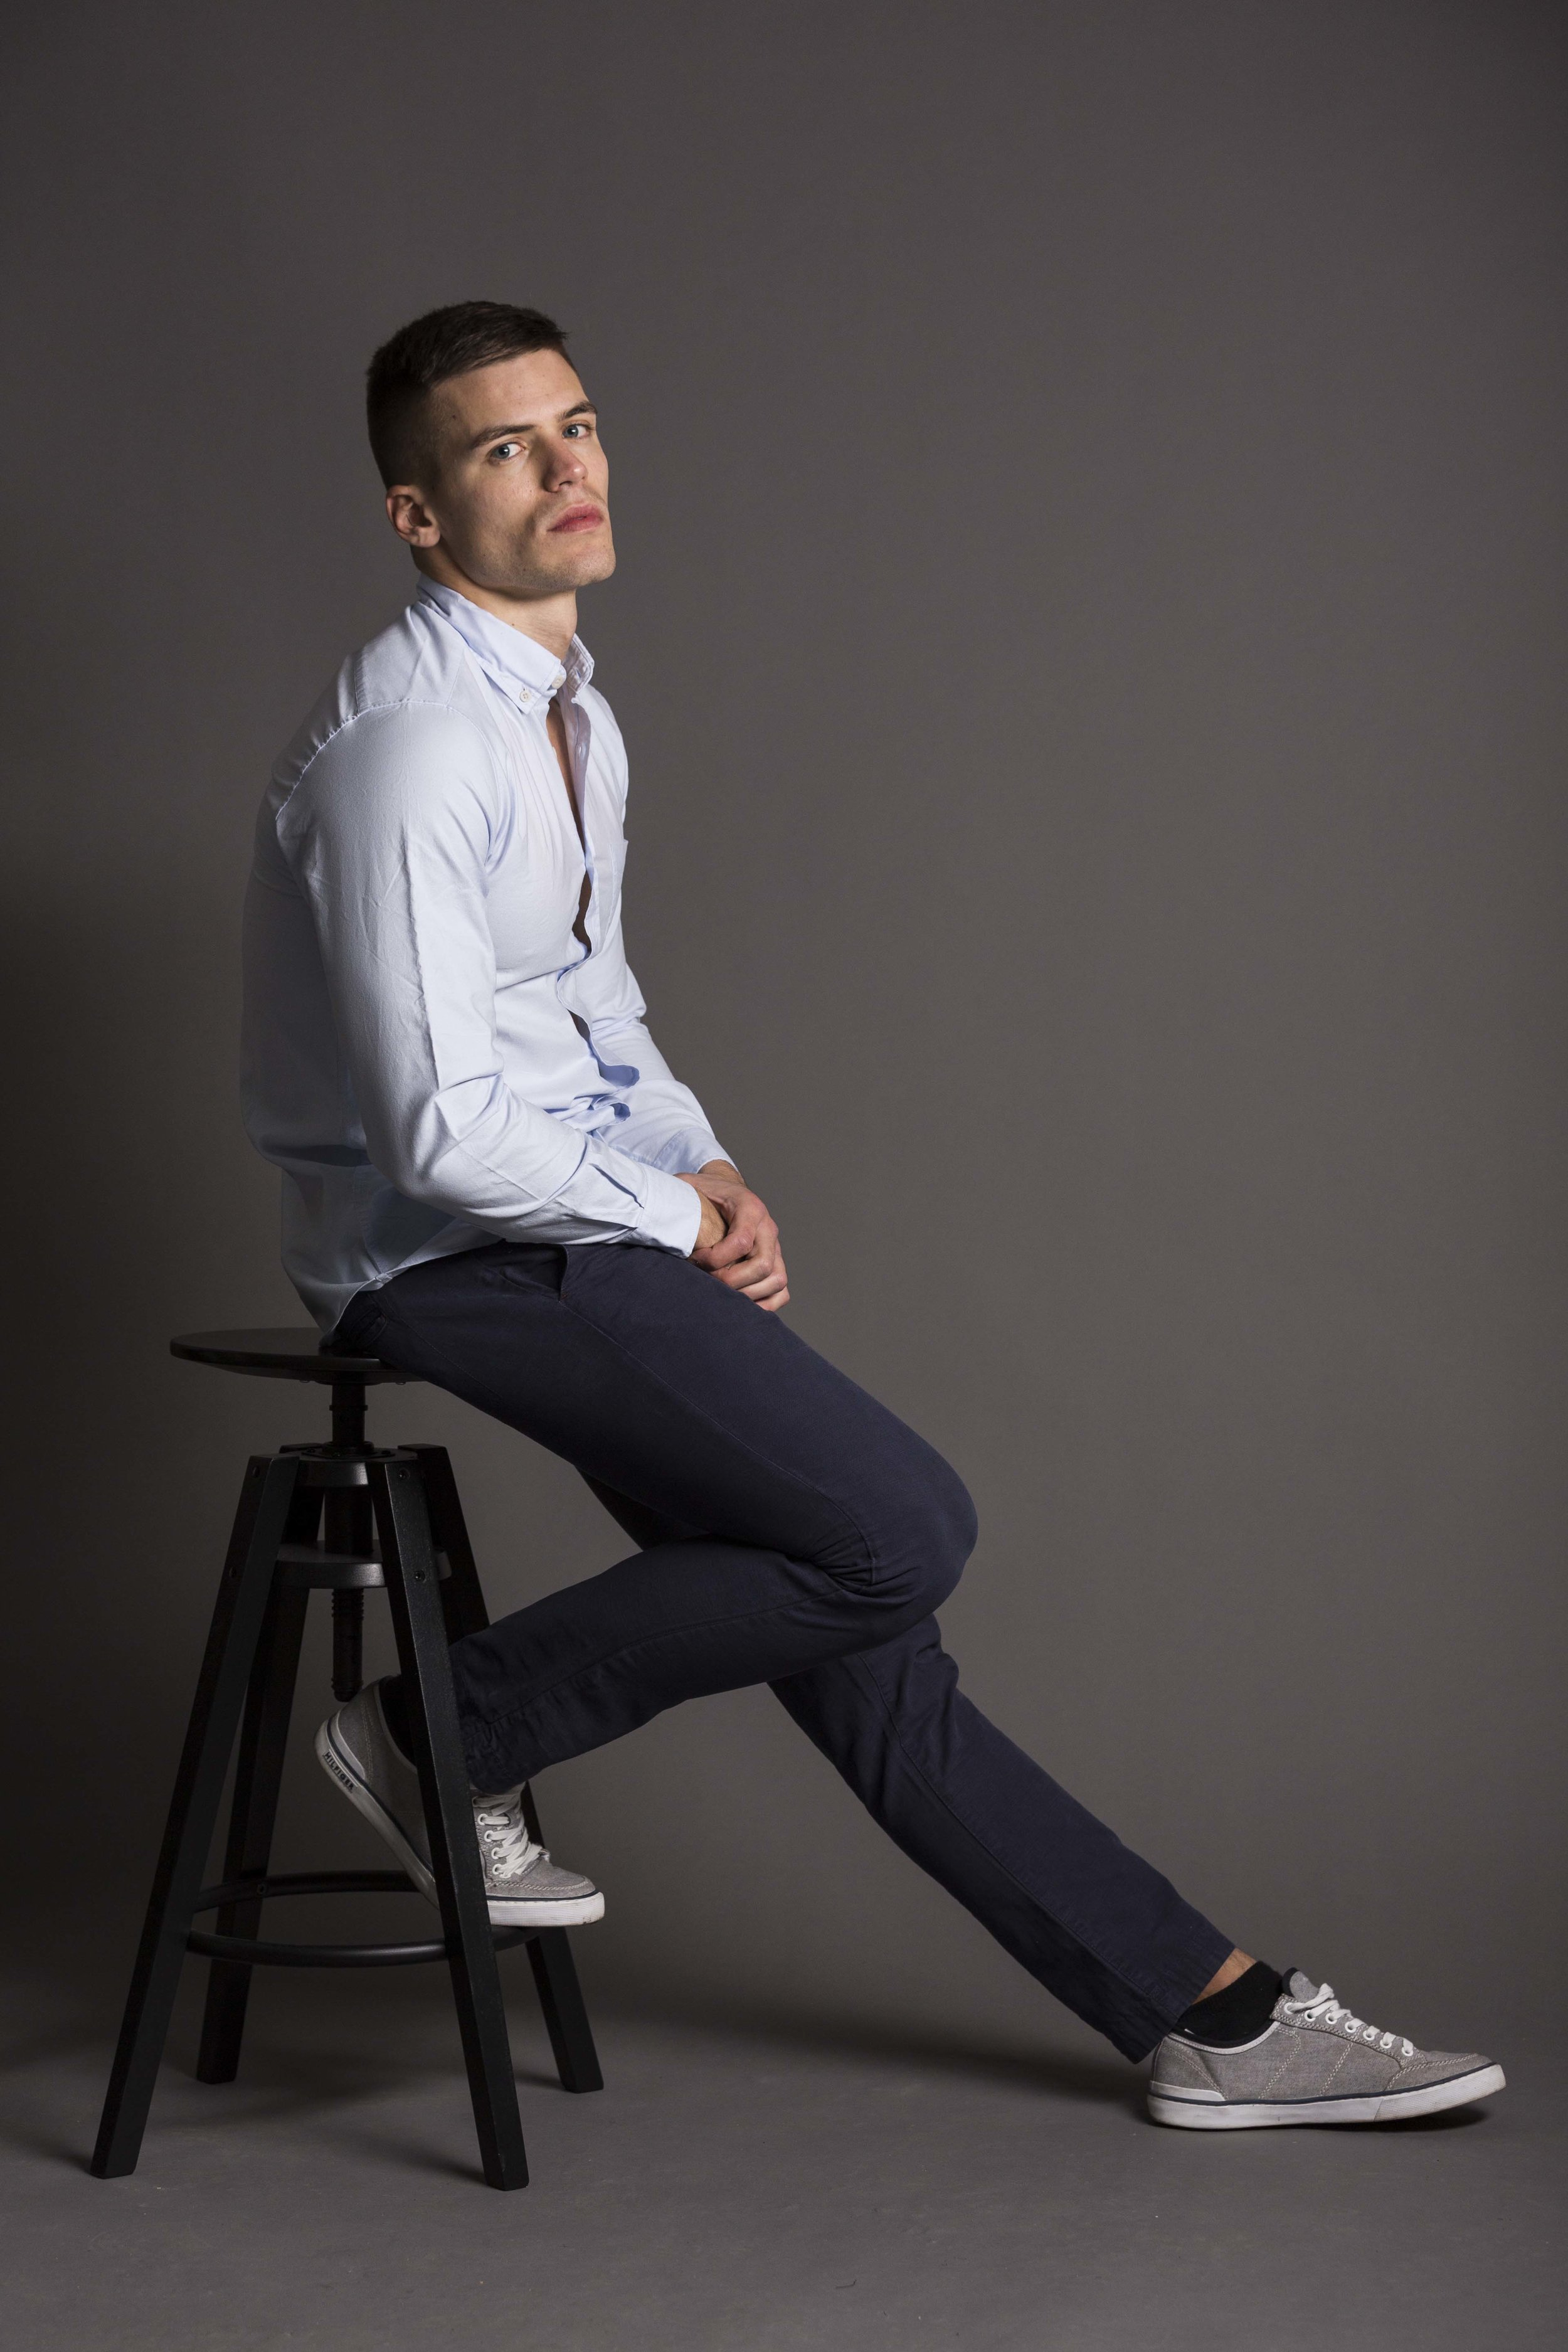 Shirt by  Sunspel , joggers by  Ted Baker , sneakers - models own